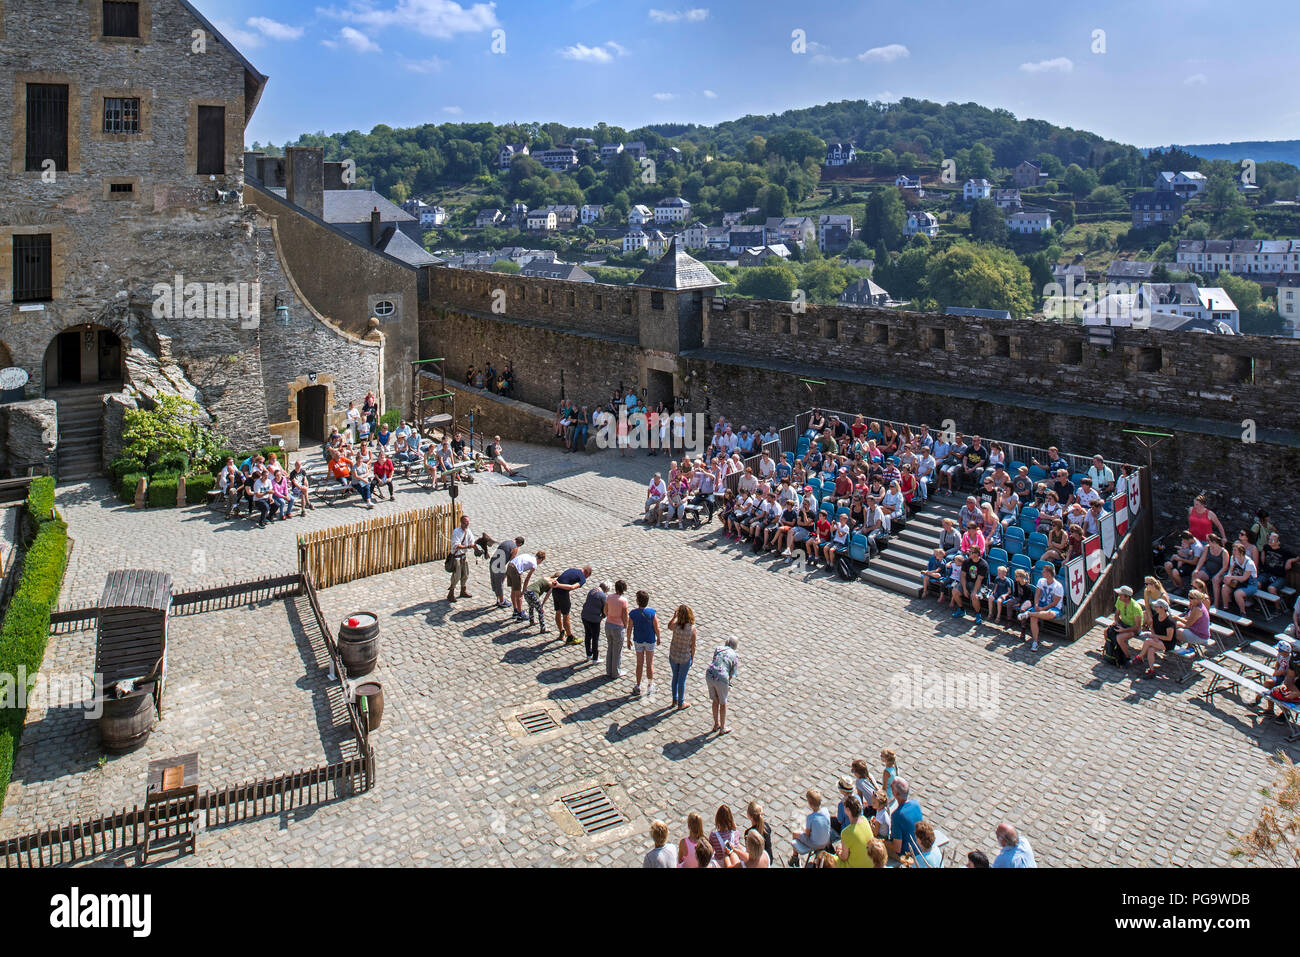 Tourists watching falconry / bird of prey show in the Château de Bouillon Castle, Luxembourg Province, Belgian Ardennes, Belgium - Stock Image